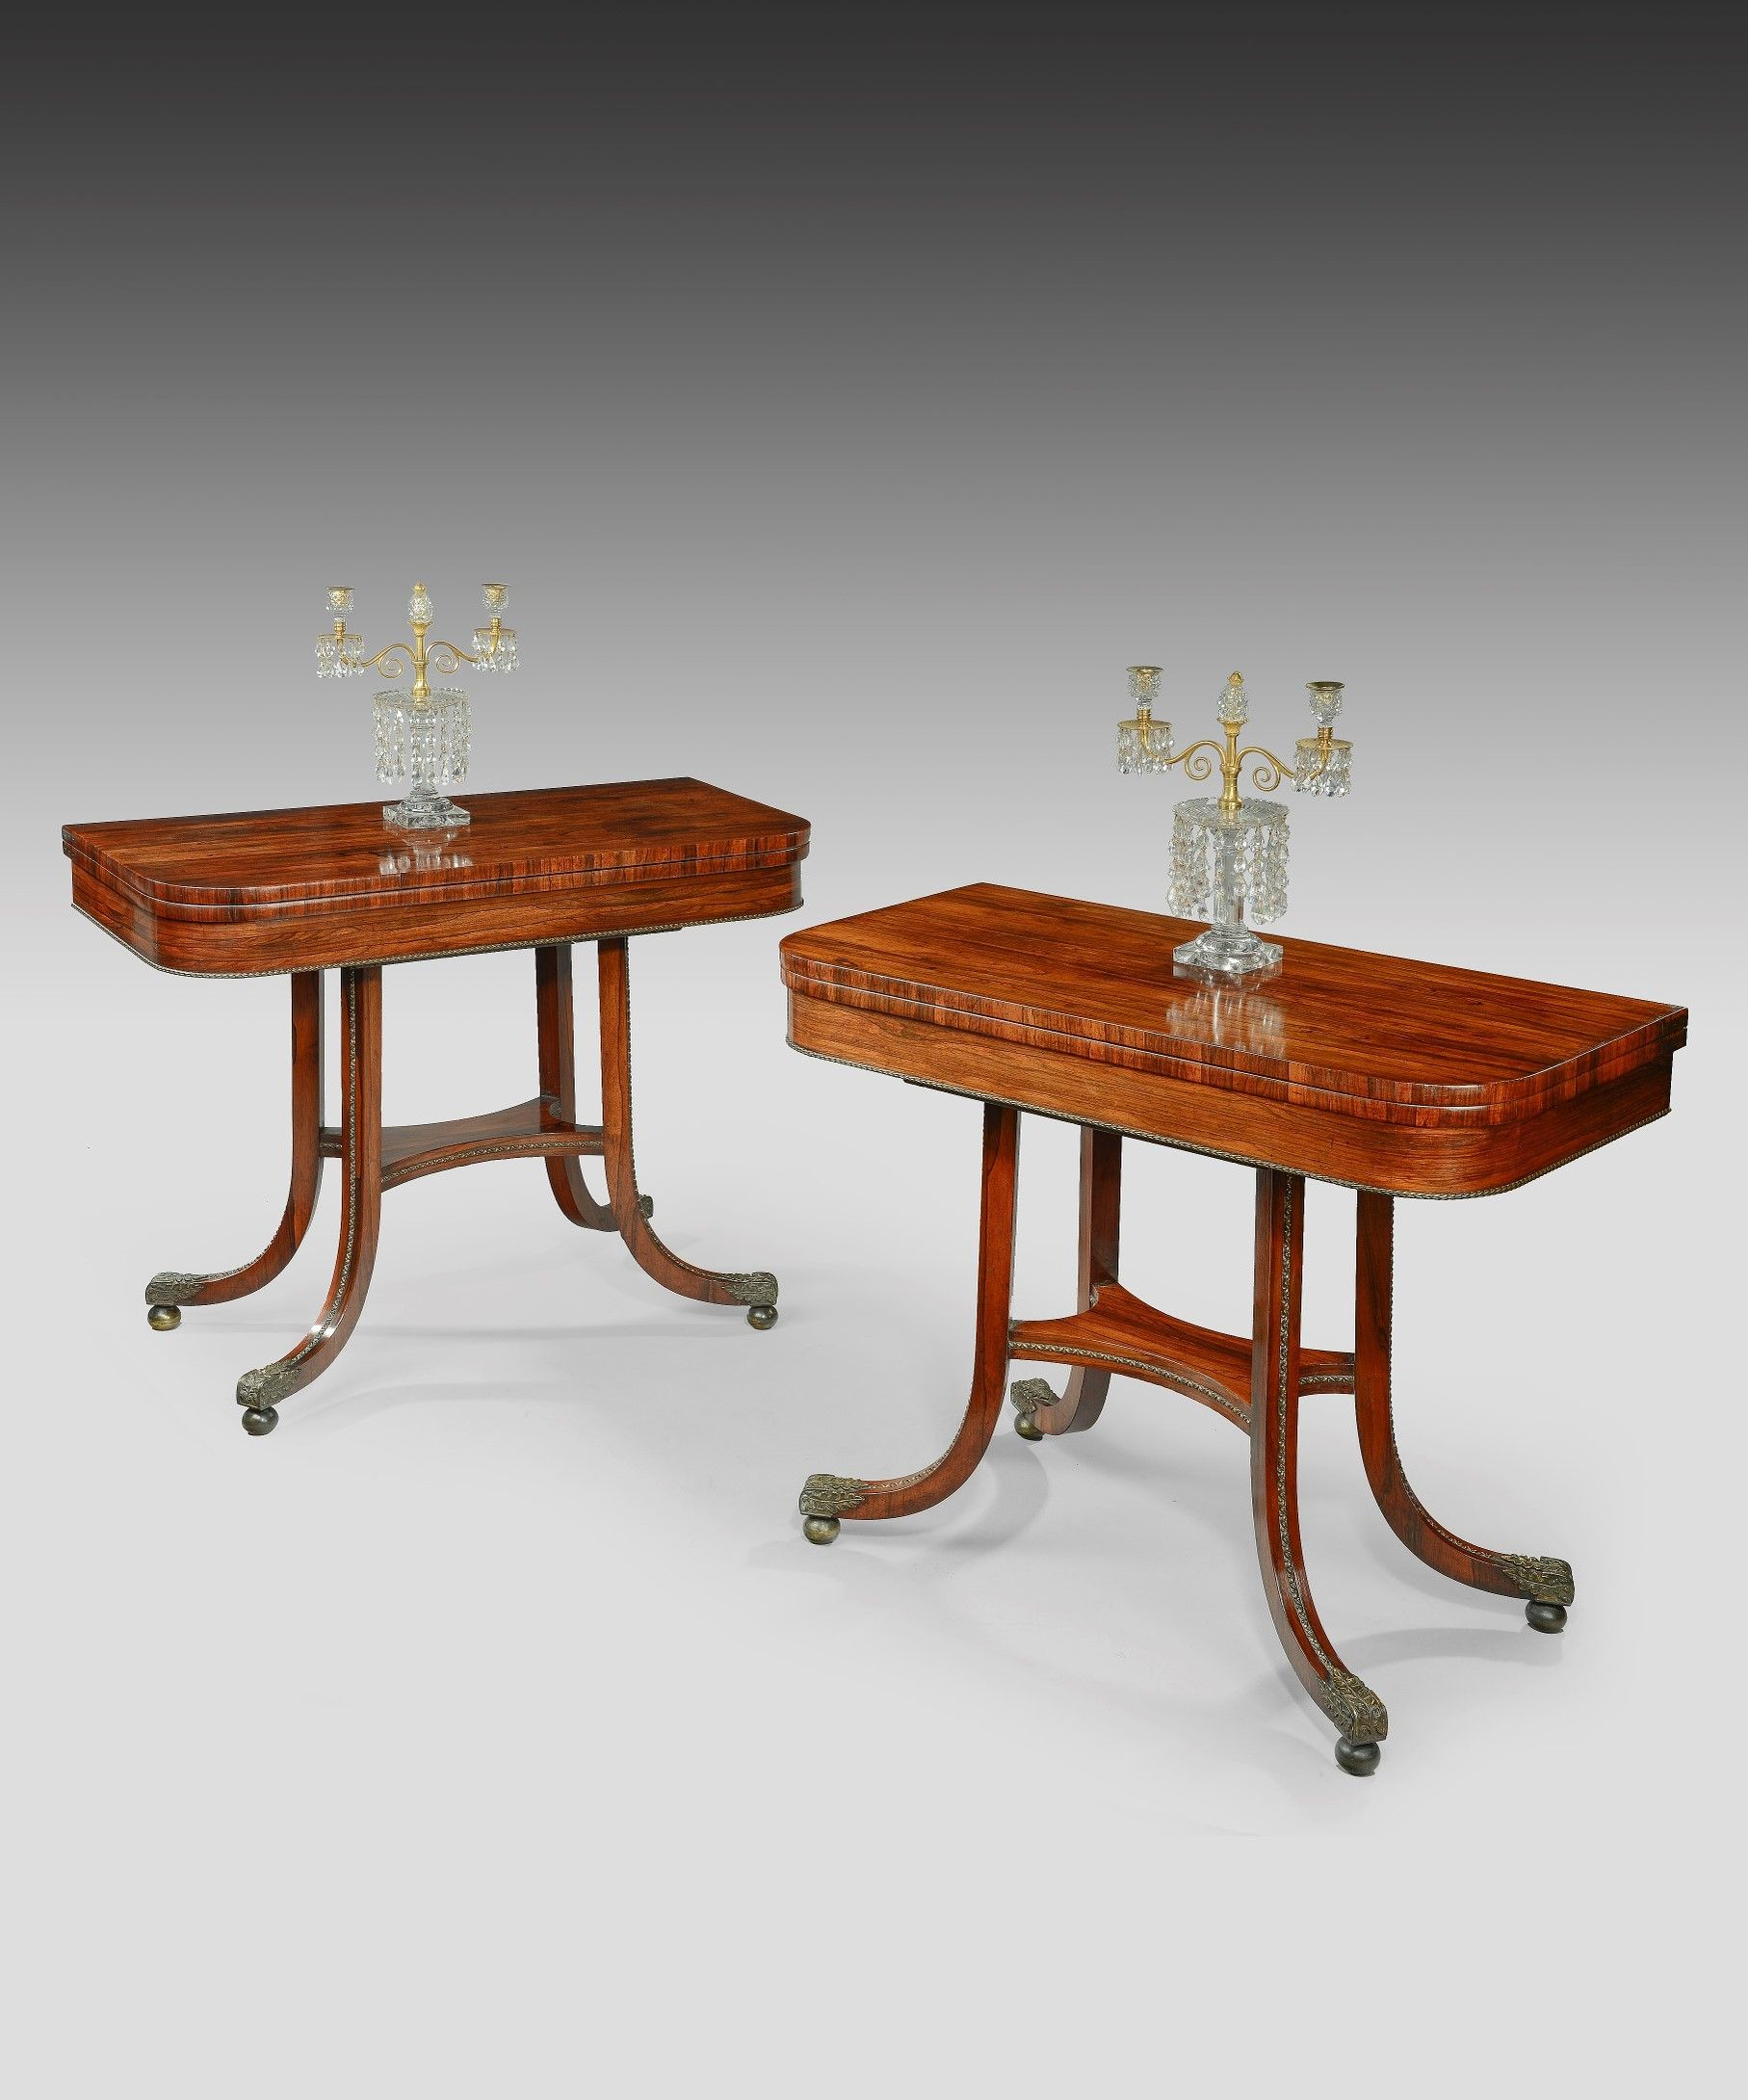 A Pair Of Regency Rosewood Card Tables With Beautiful Ormolu Detailing Georgian Furniture Antique Dining Tables English Antique Furniture